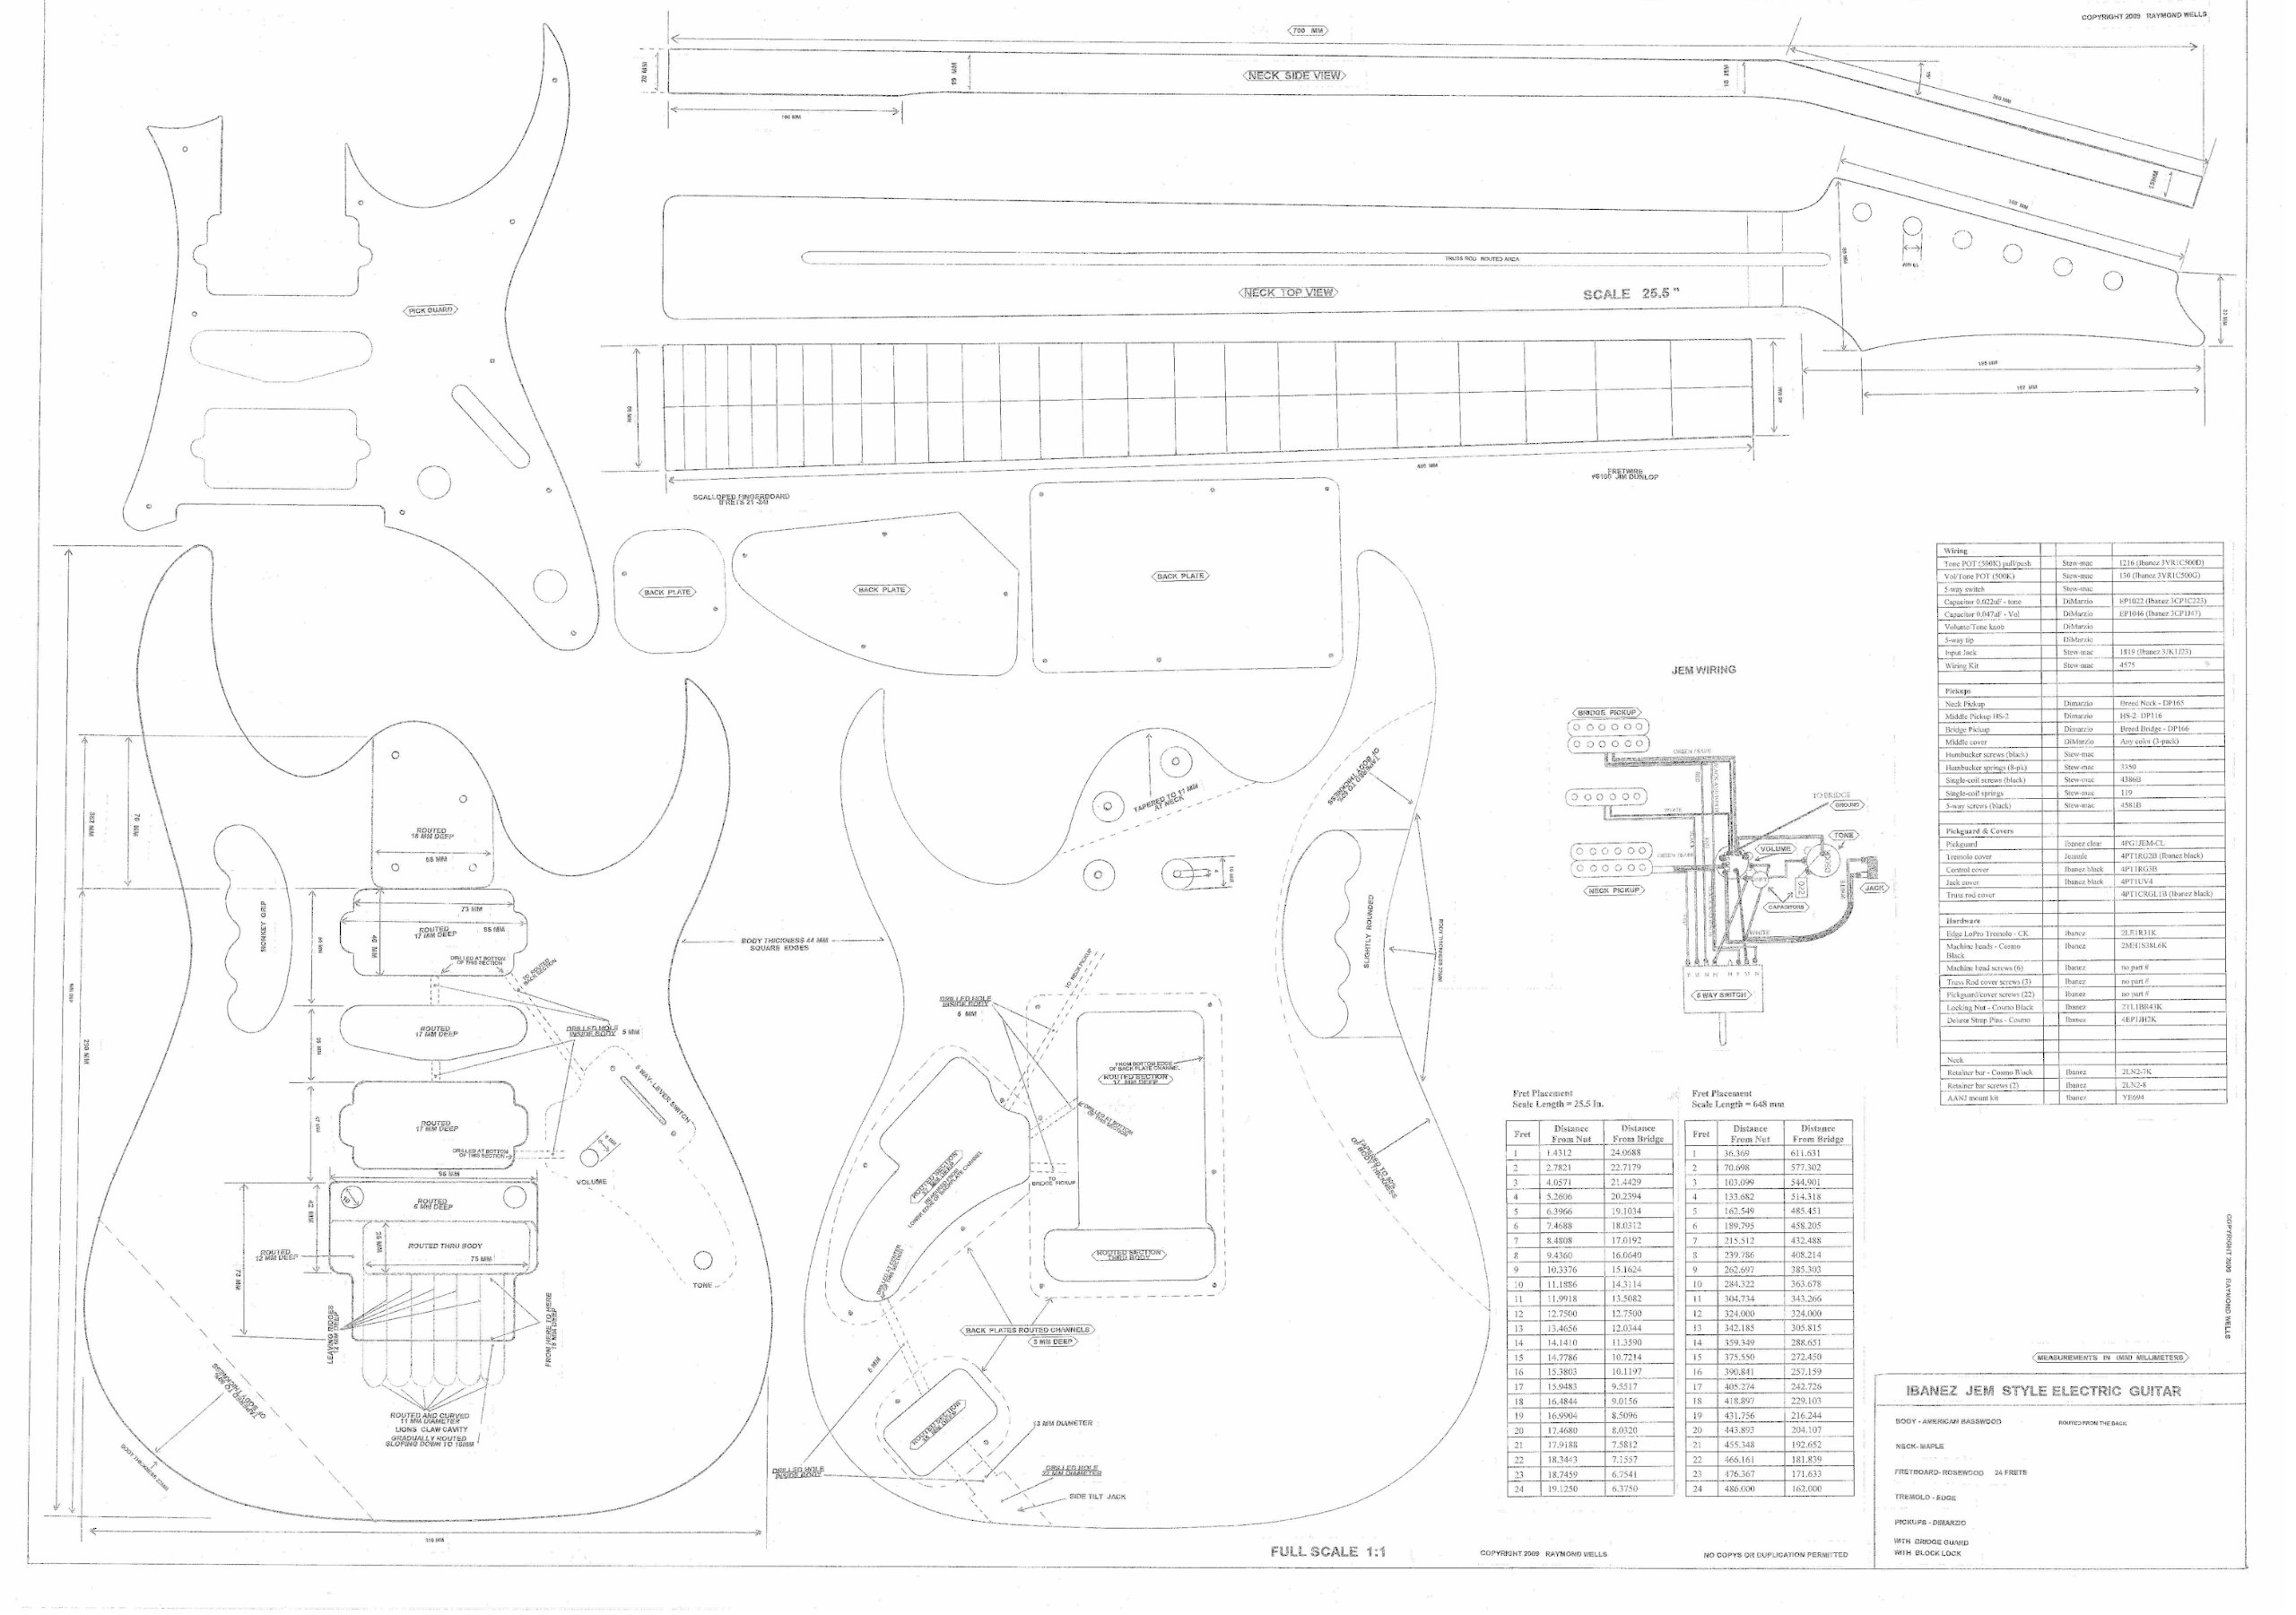 Cheap Ibanez Electric Guitar Plans - Full Scale technical design drawings - Jem 777- Actual Size Plans Black Friday & Cyber Monday 2019